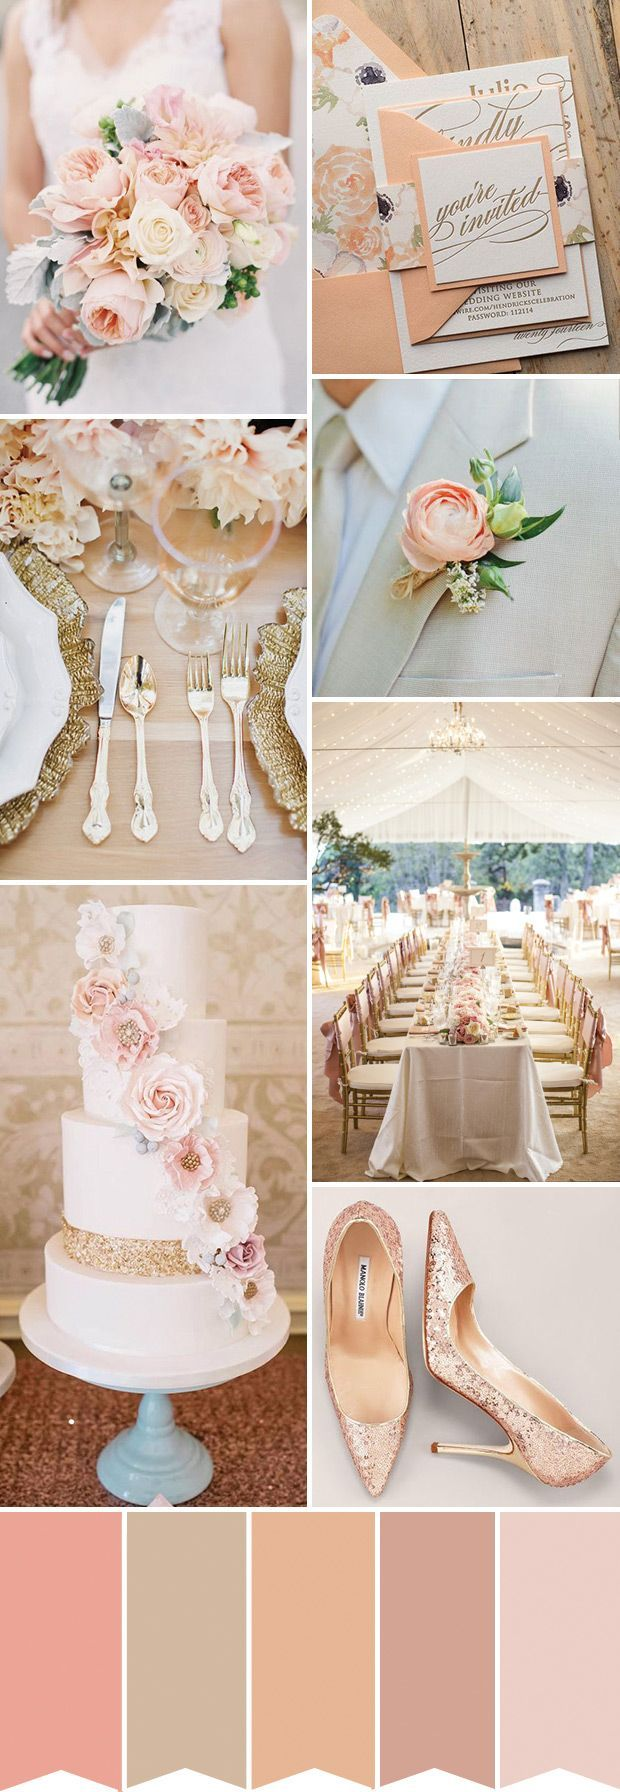 How To Create A Sparkling Peach and Gold Wedding Palette // http://www.onefabday.com